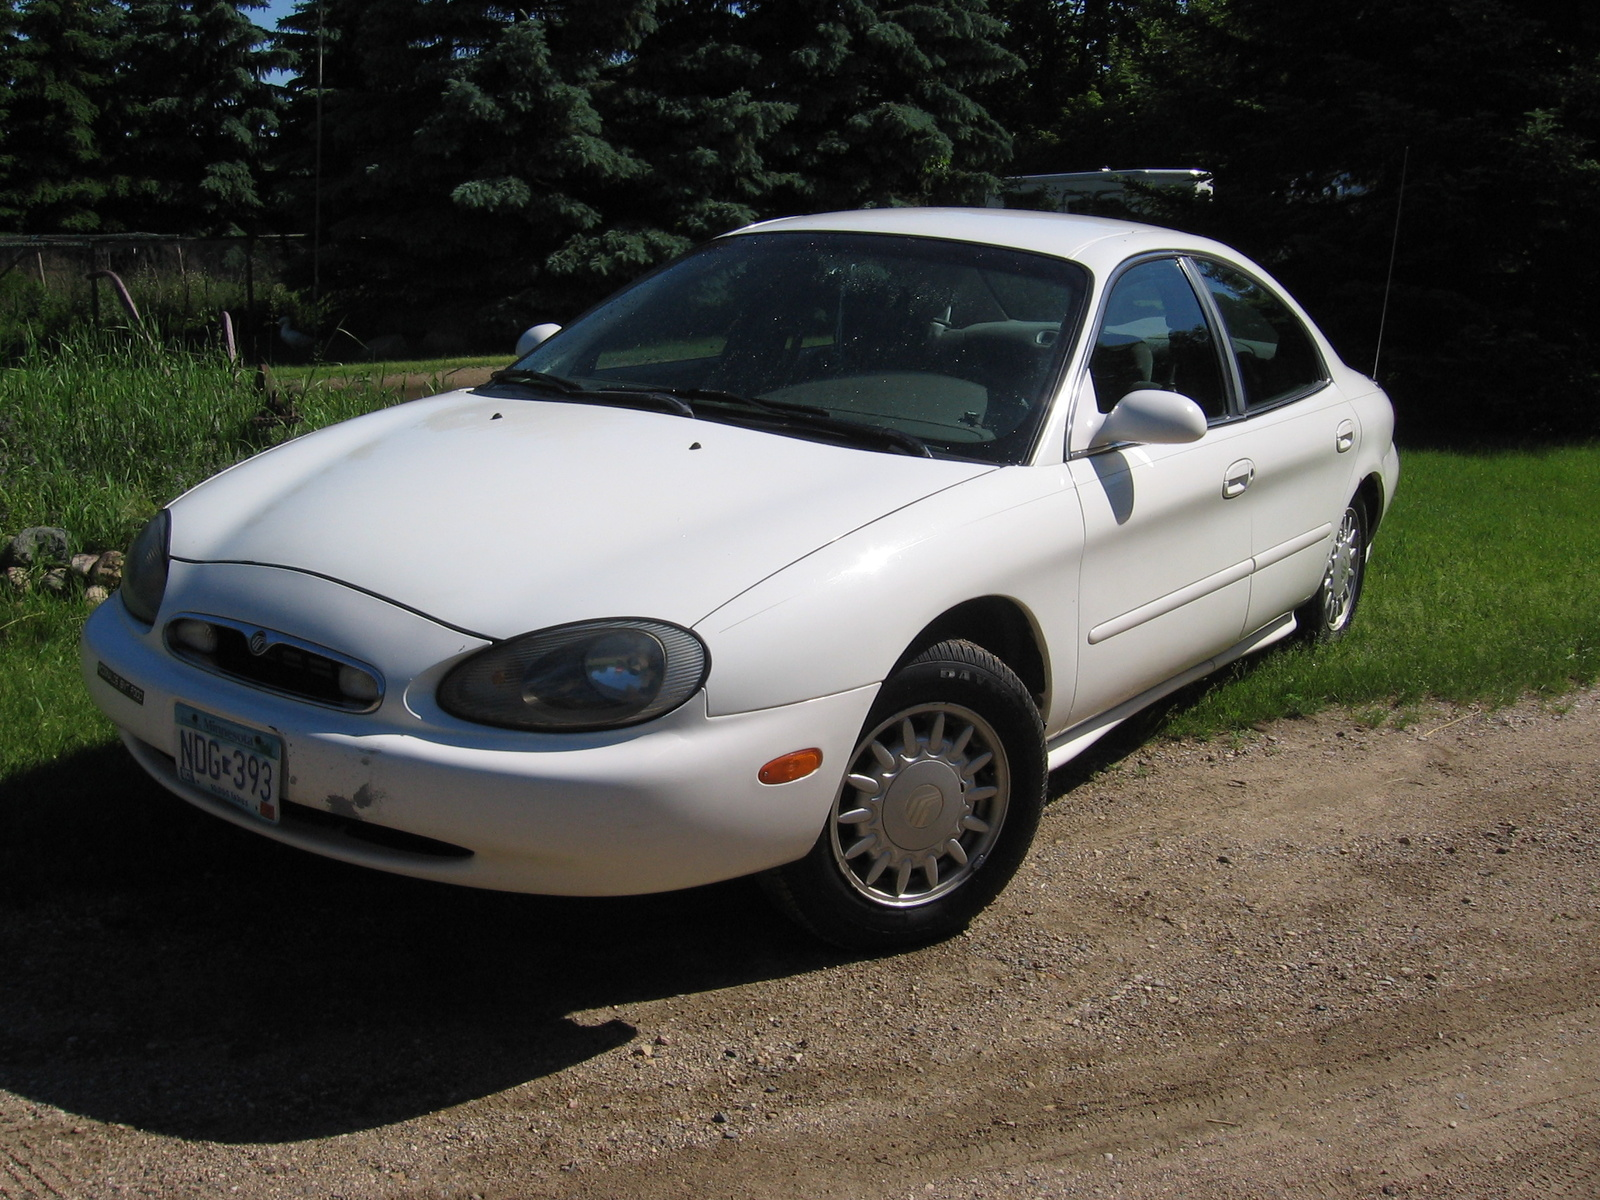 1997 Mercury Sable 4 Dr GS Sedan picture